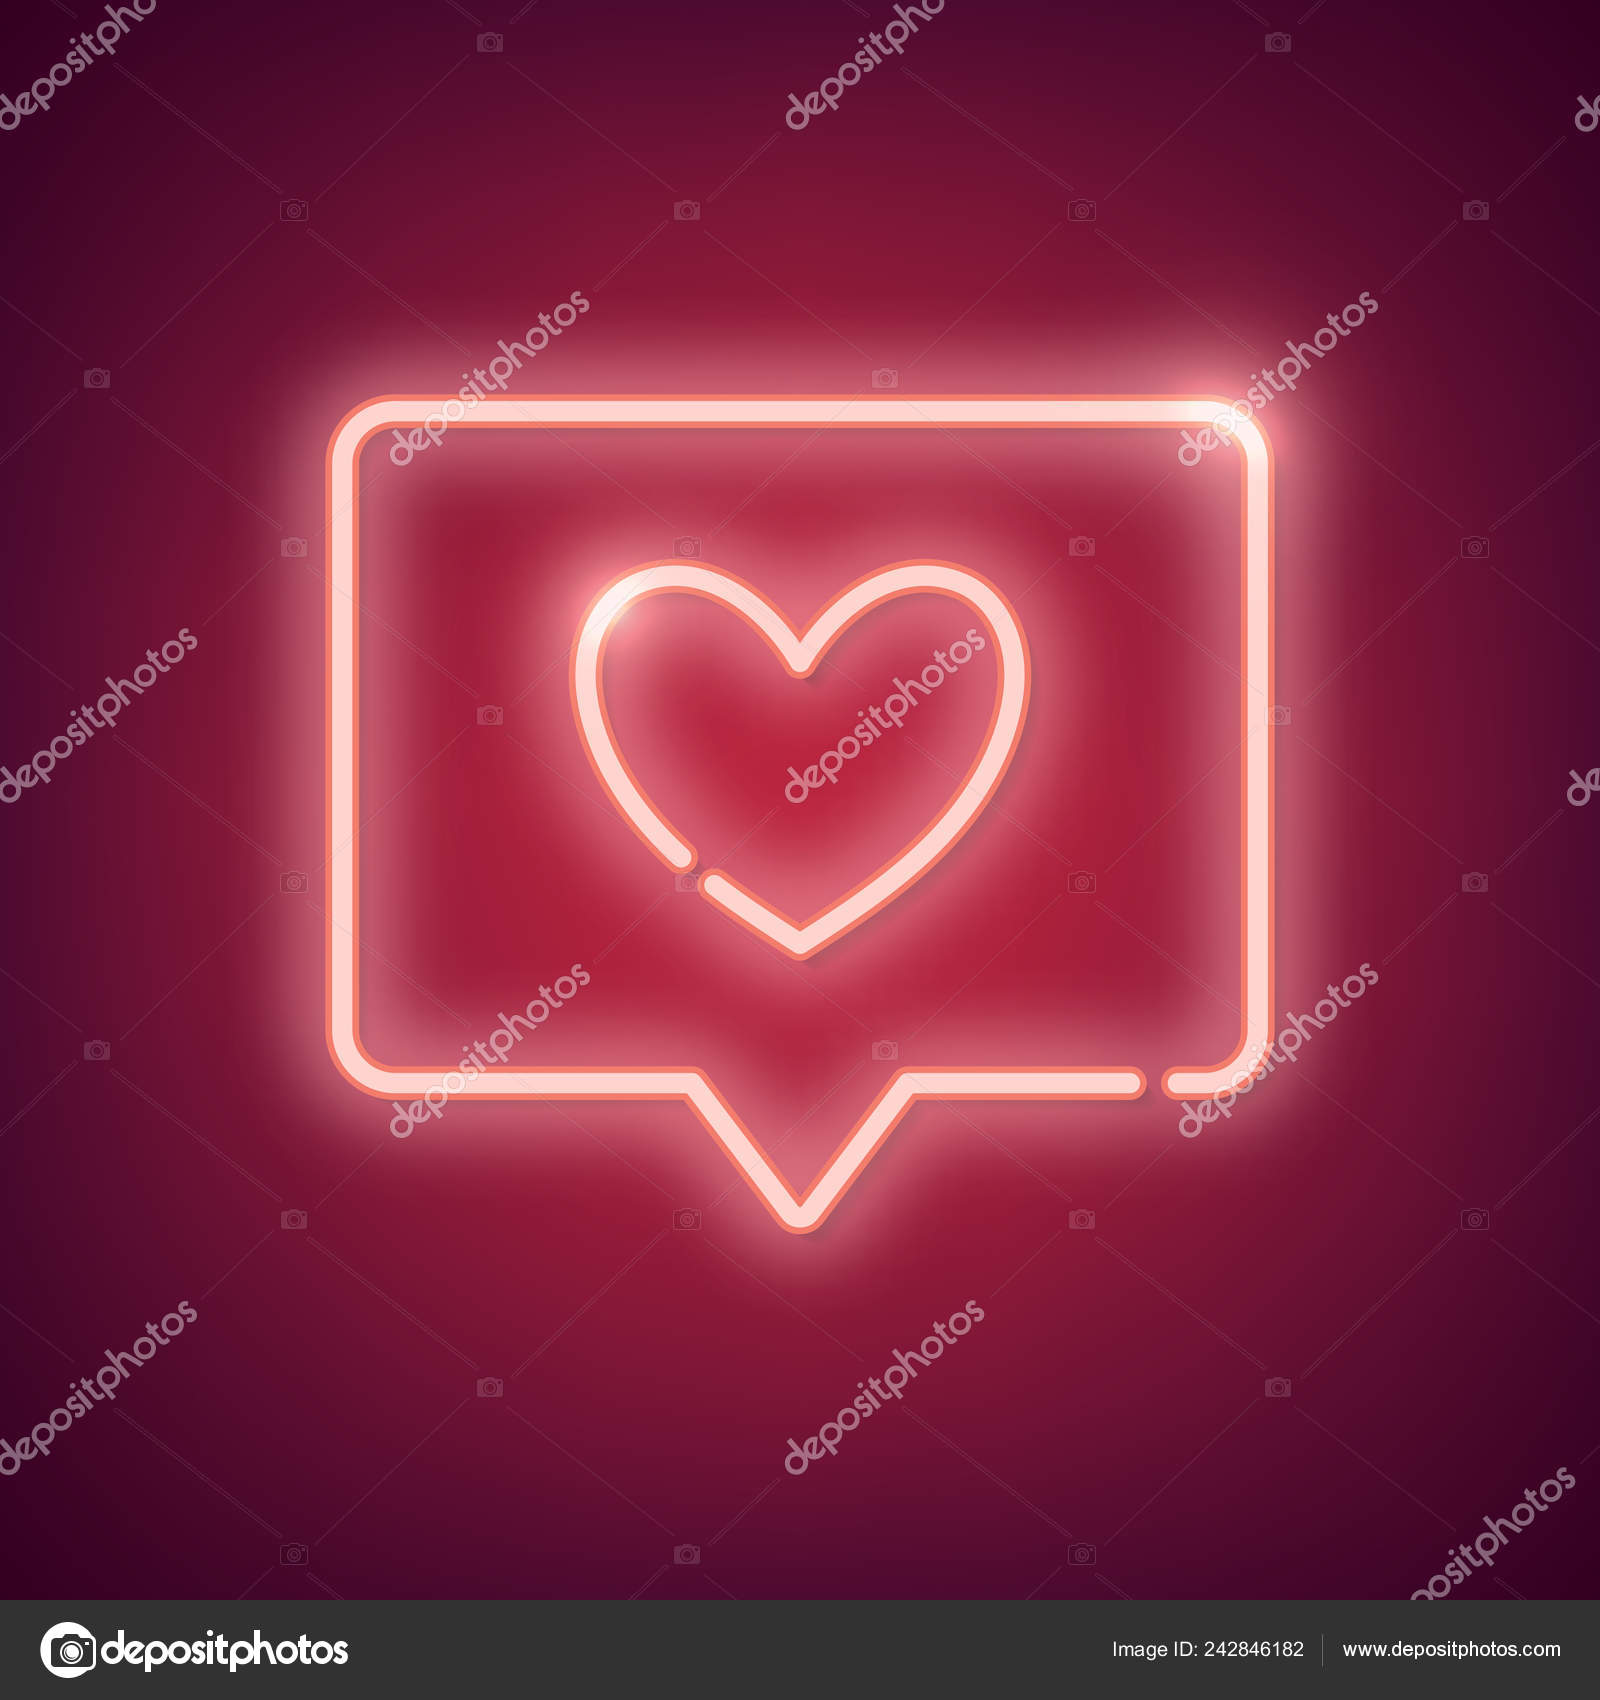 Neon Pink Light Valentine Day Symbol Background Stock Vector C Rawpixel 242846182